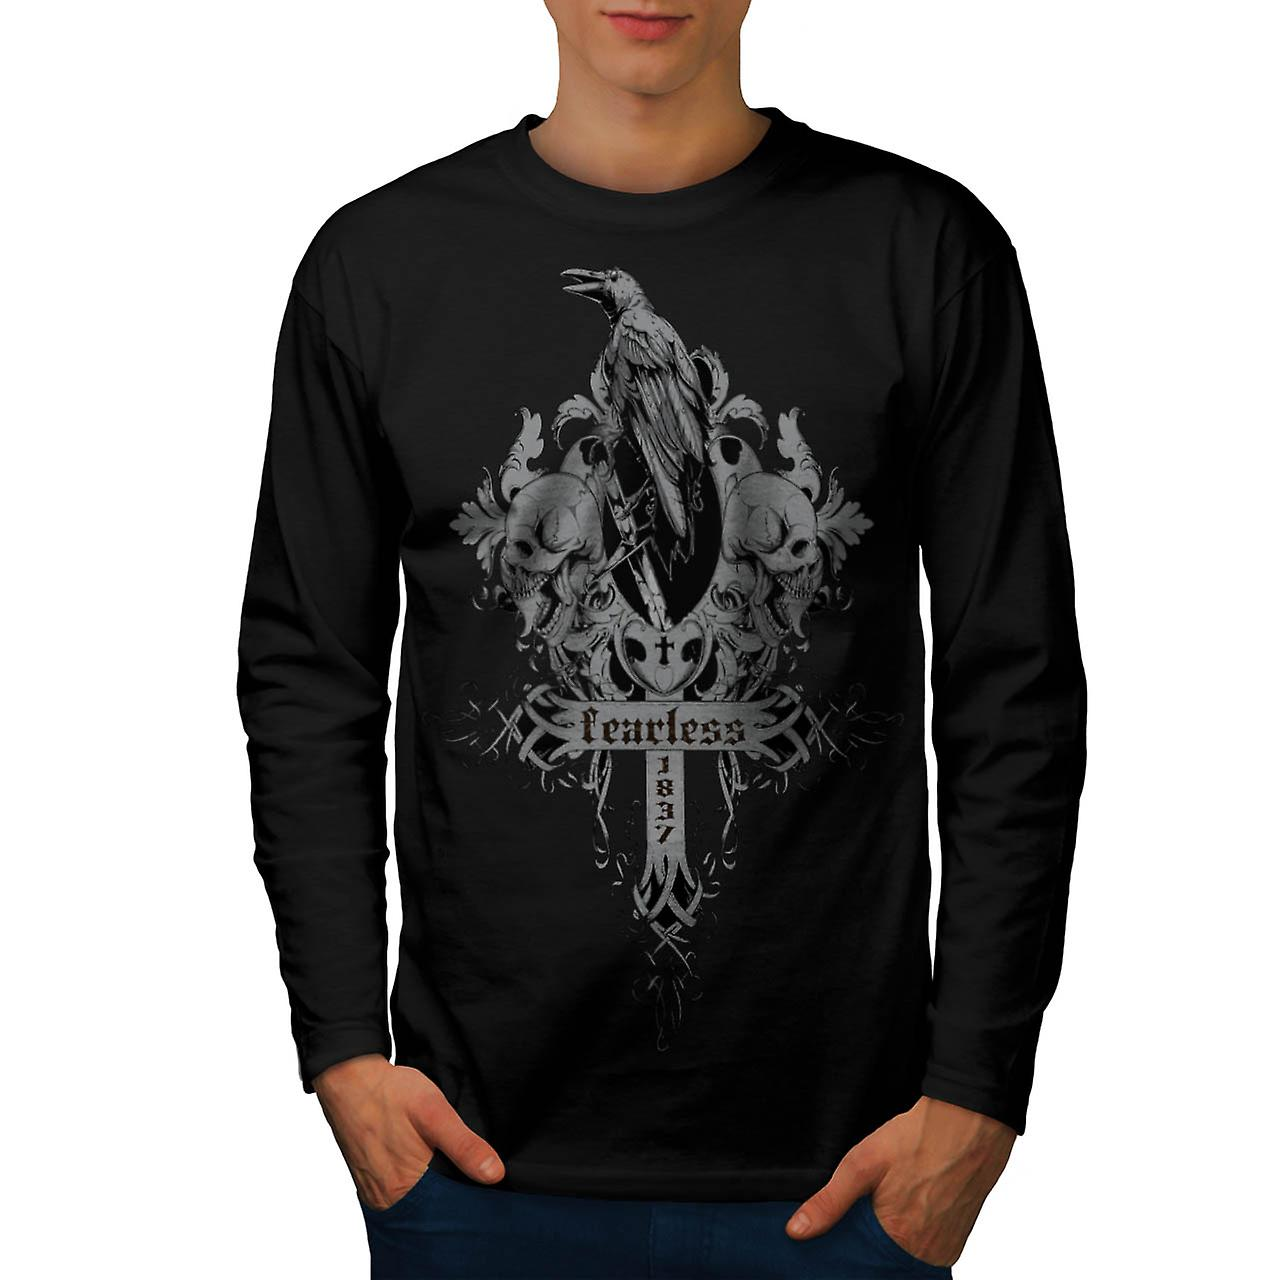 Fearless Death Crow Grave Yard Men Black Long Sleeve T-shirt | Wellcoda